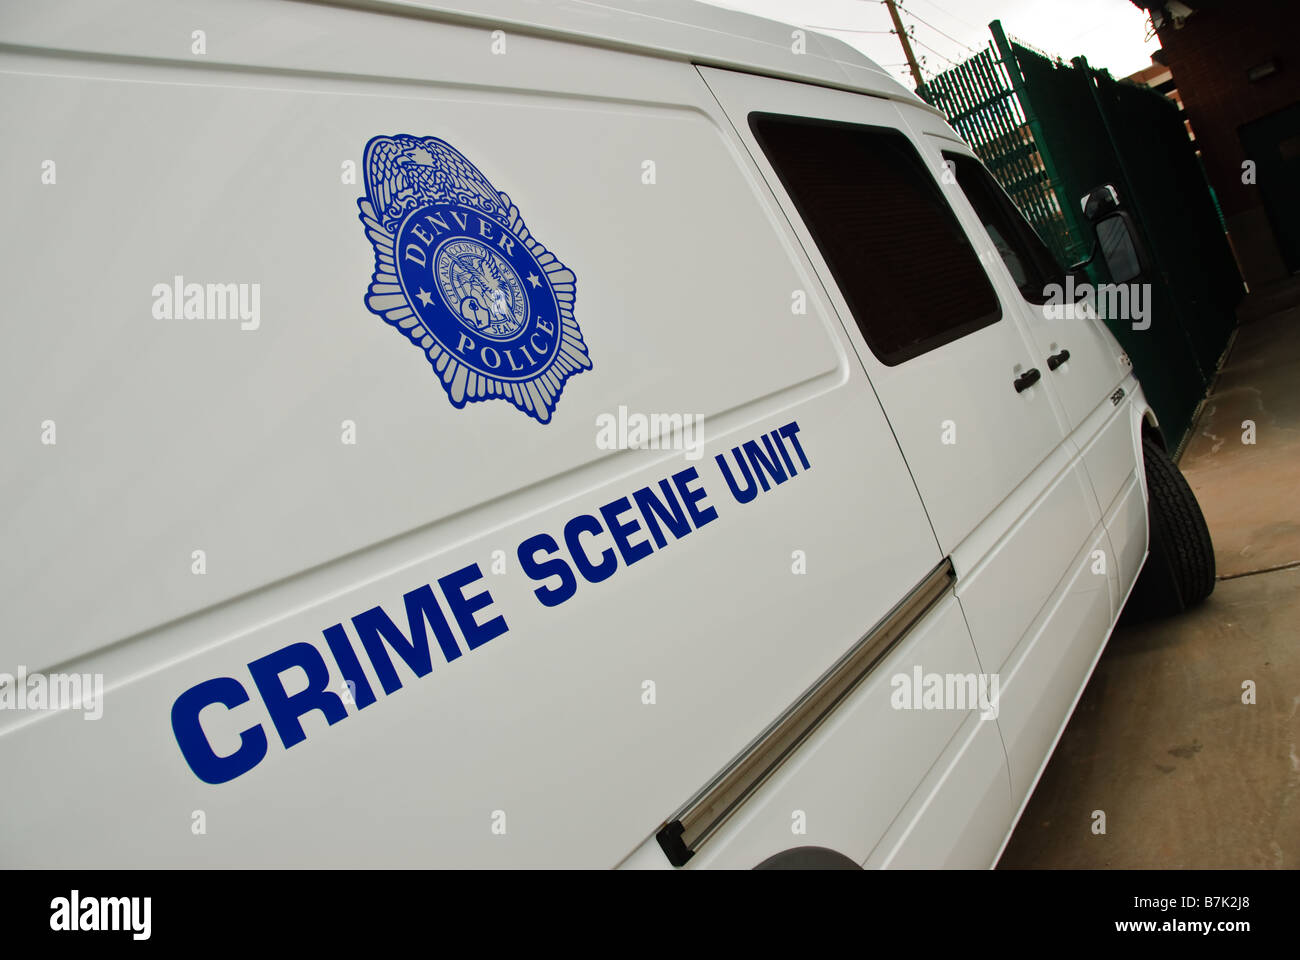 Crime scene unit - Stock Image